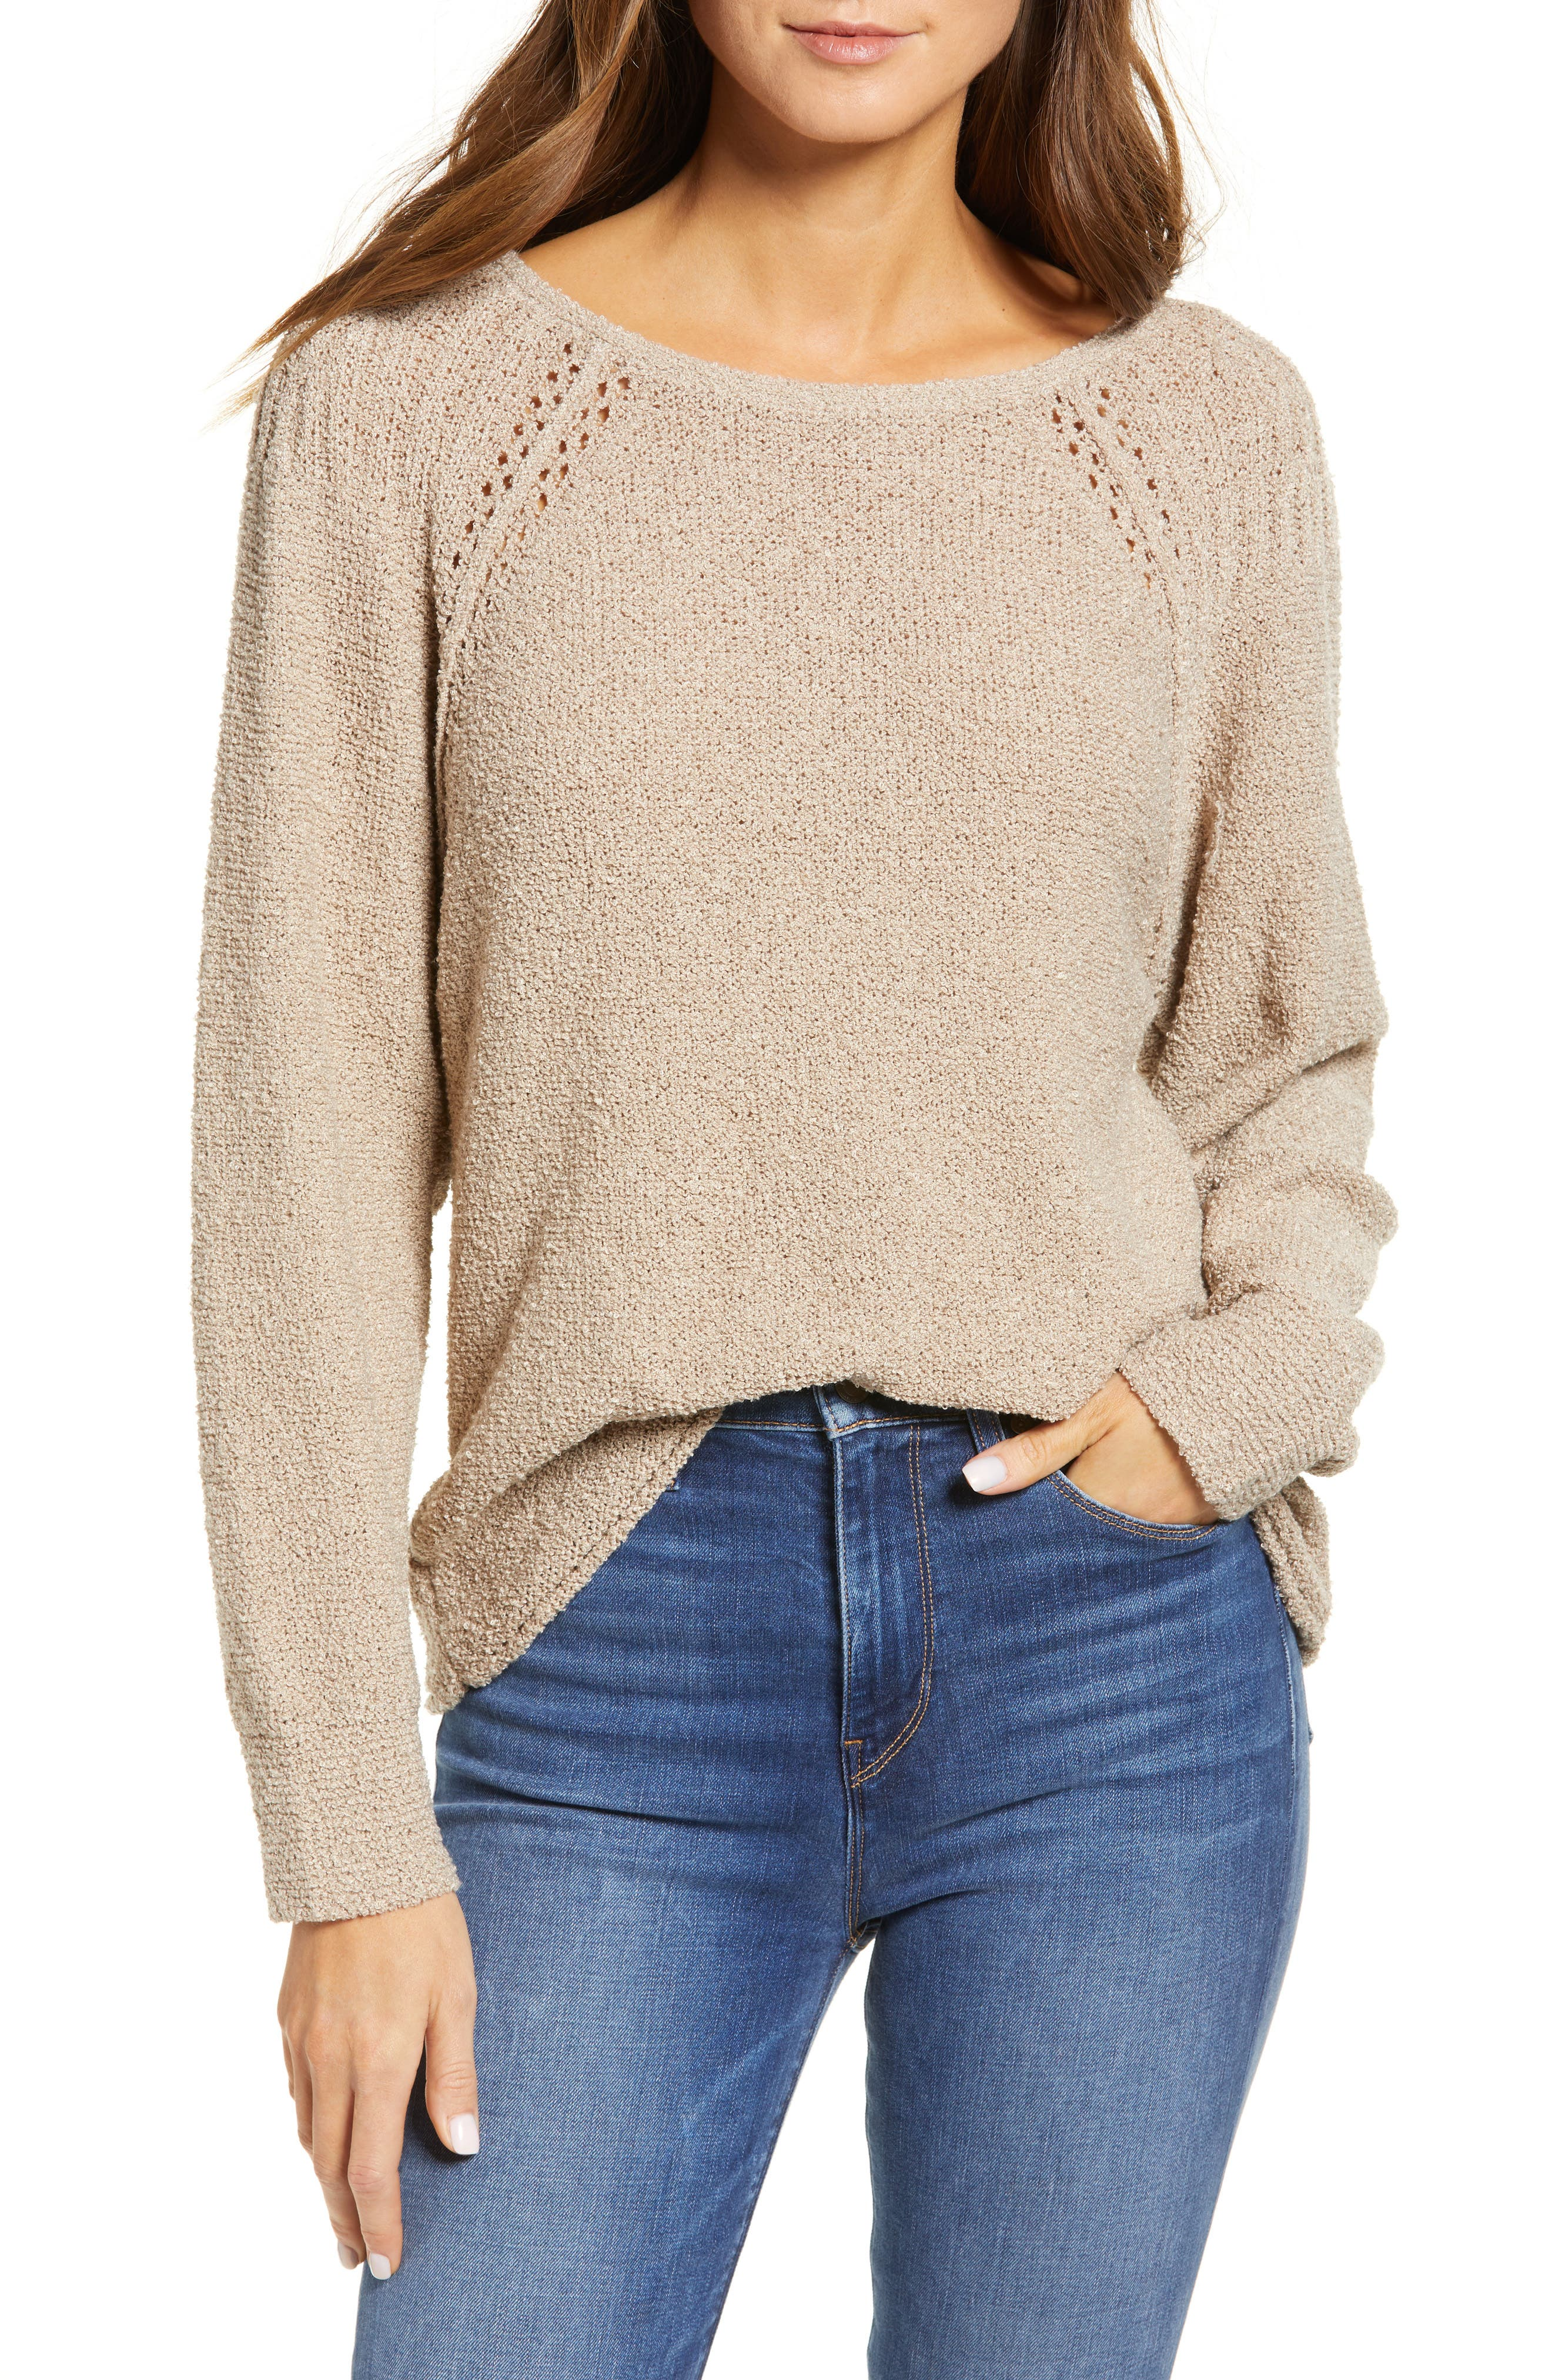 Boucle yarn adds soft, subtle texture to a relaxed sweater fashioned with pointelle at the raglan sleeves. Style Name: Caslon Boat Neck Boucle Sweater. Style Number: 5793092. Available in stores.